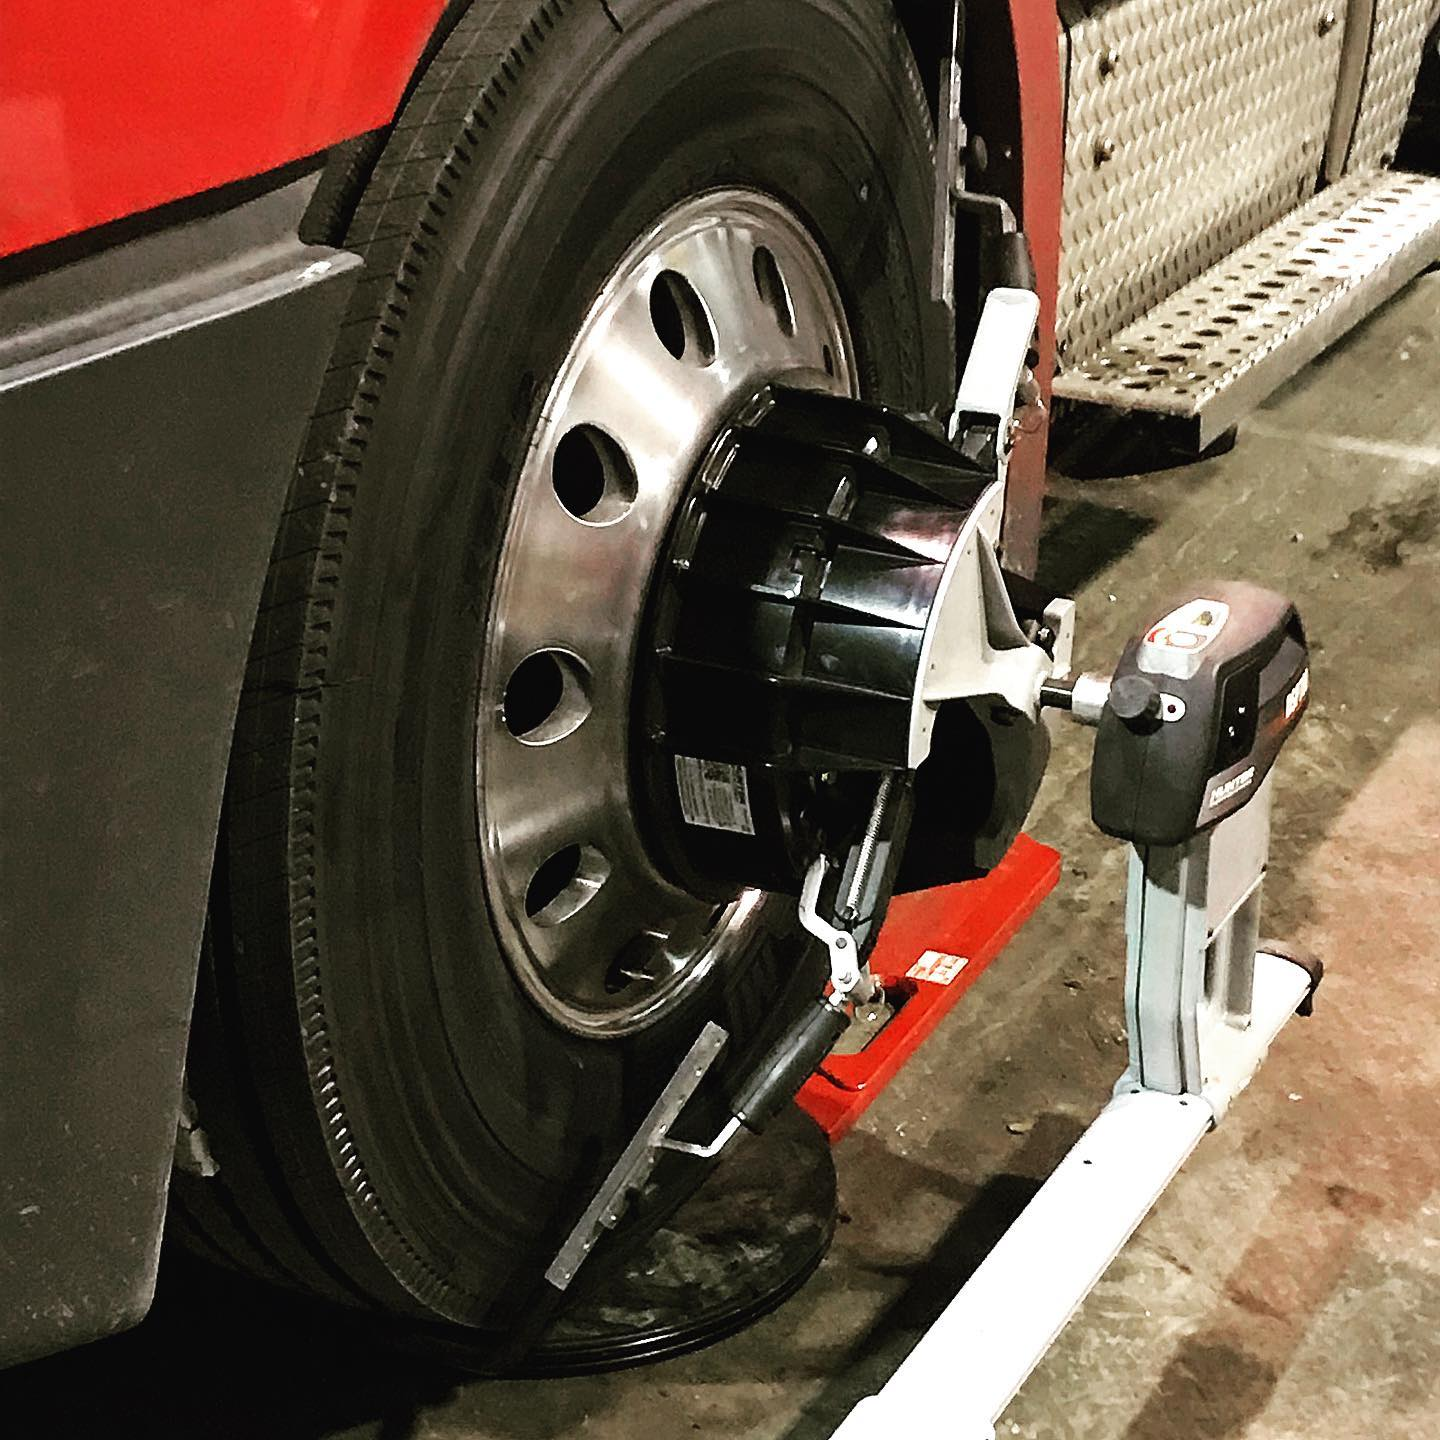 Diesel Truck Wheel Alignment Robert LA